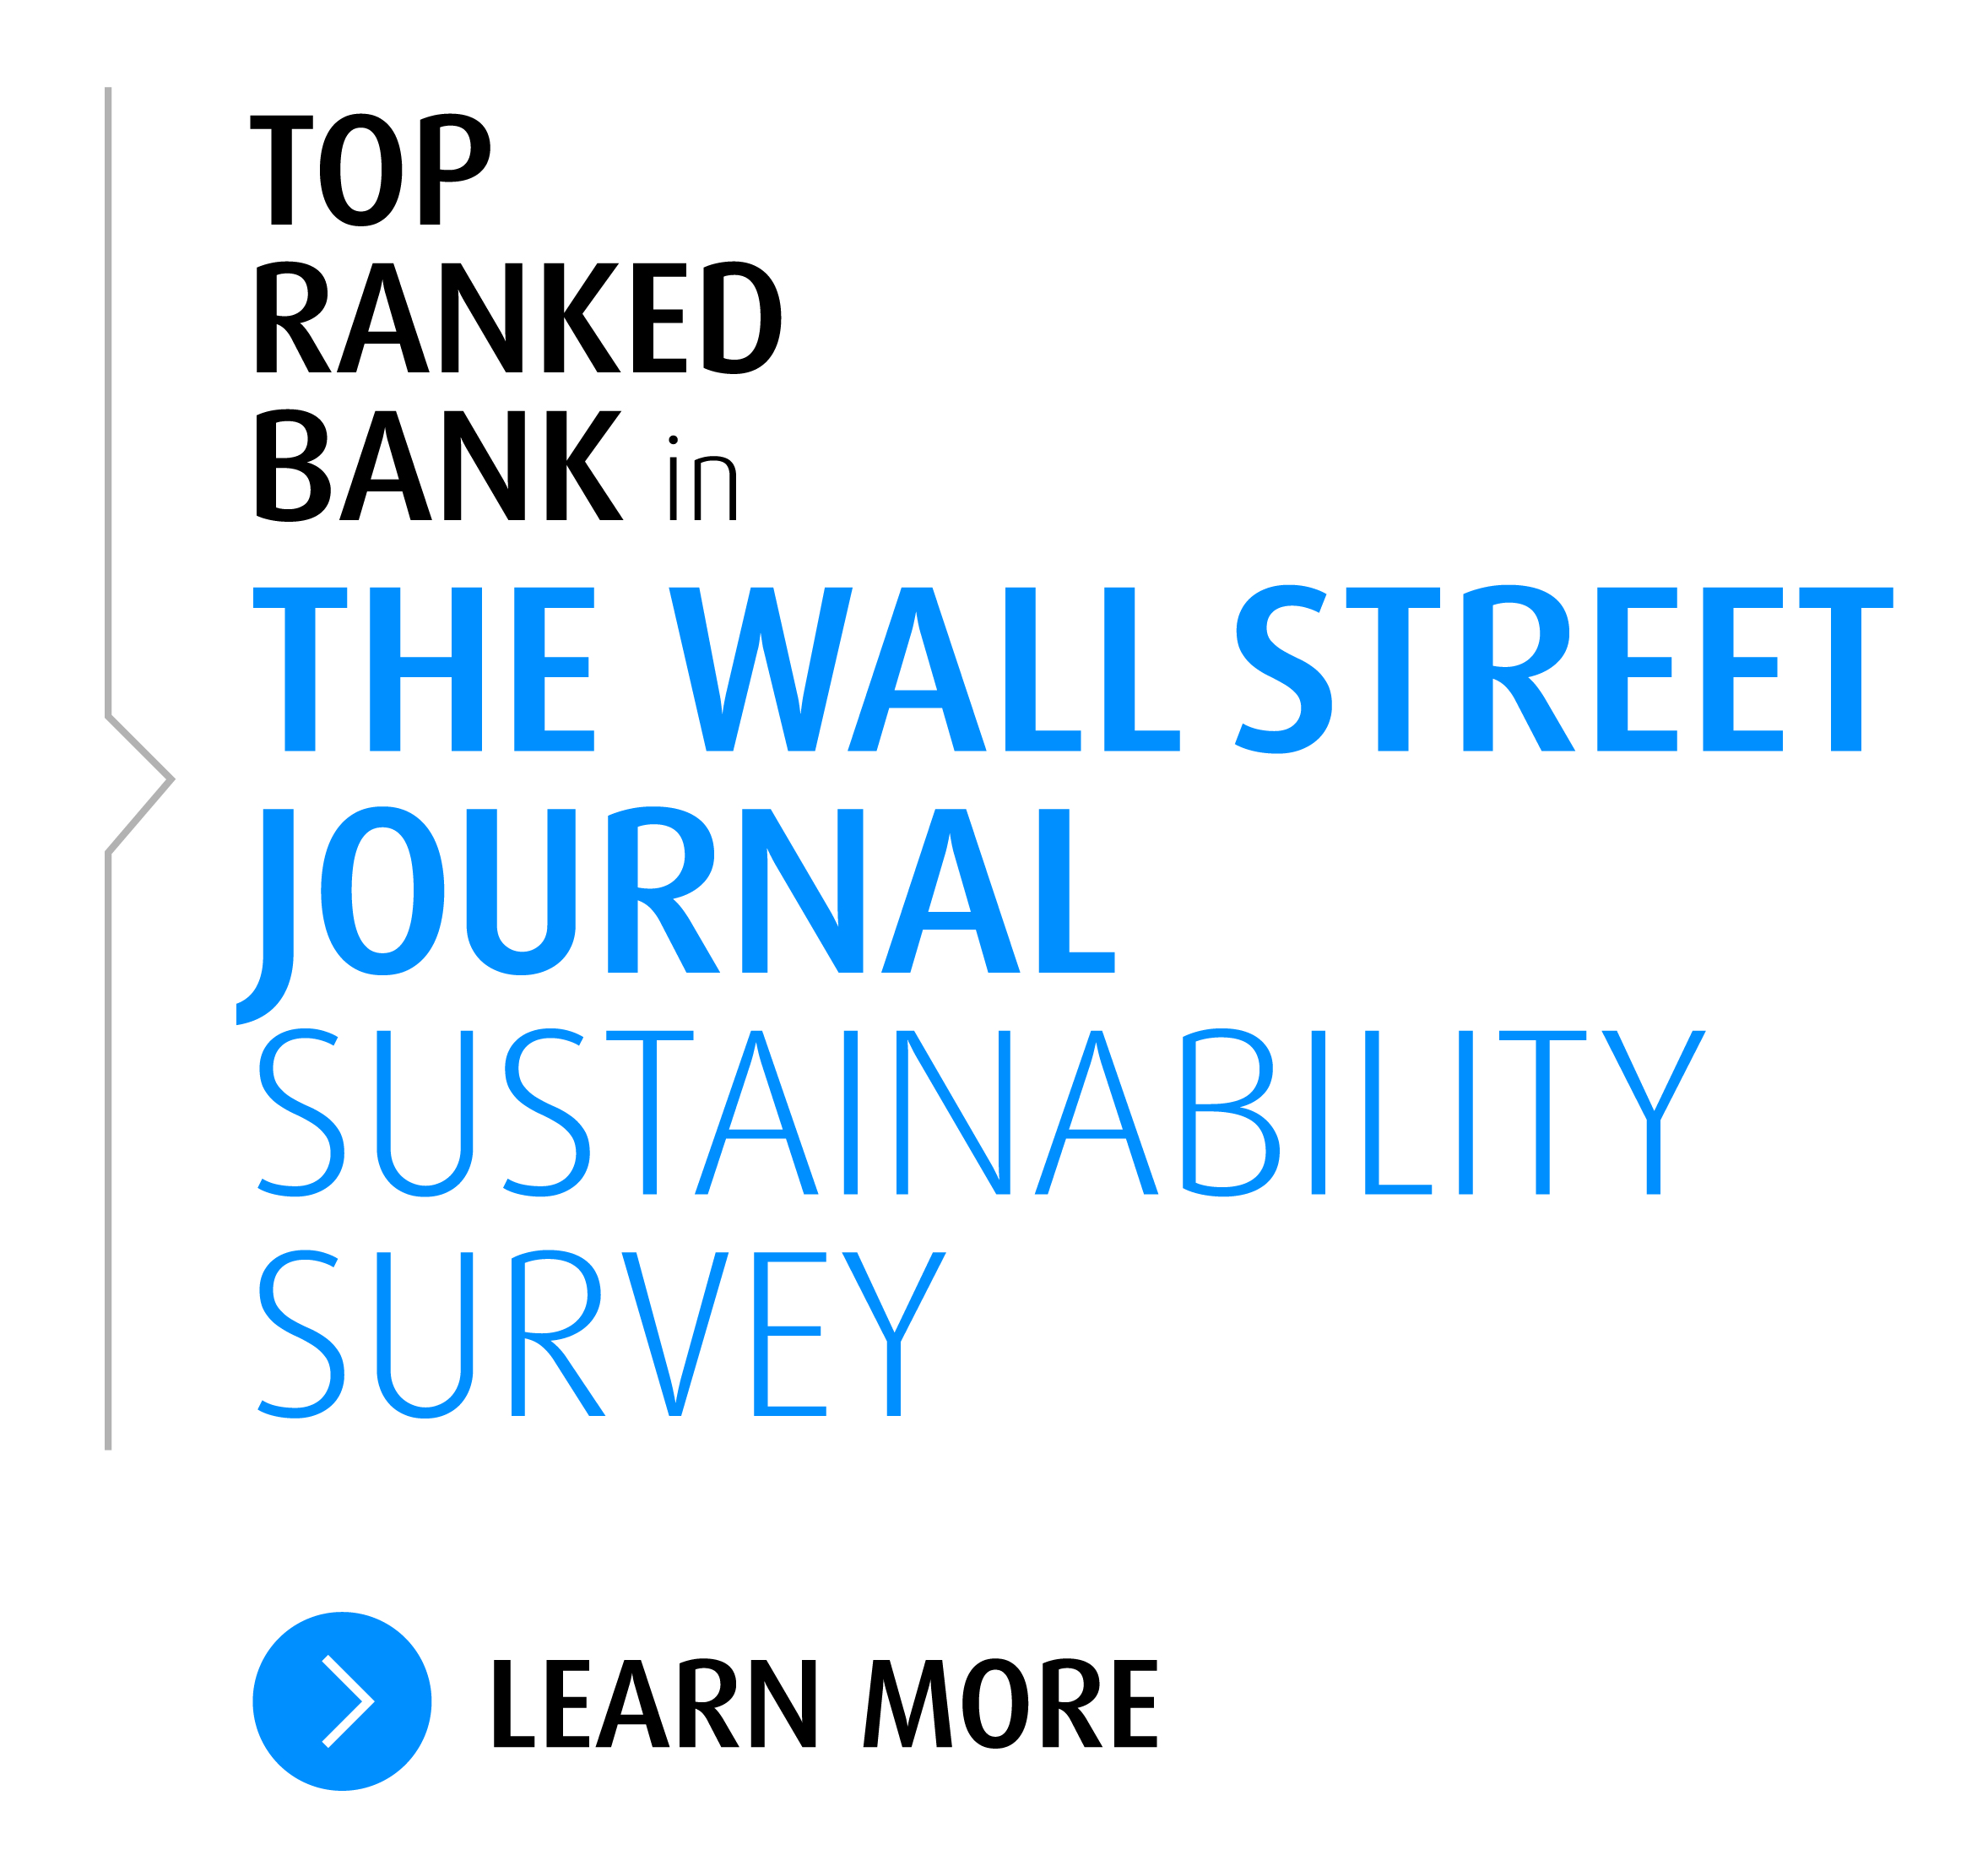 Top Ranked Bank in The Wall Street Journal Sustainability Survey. Learn more here.